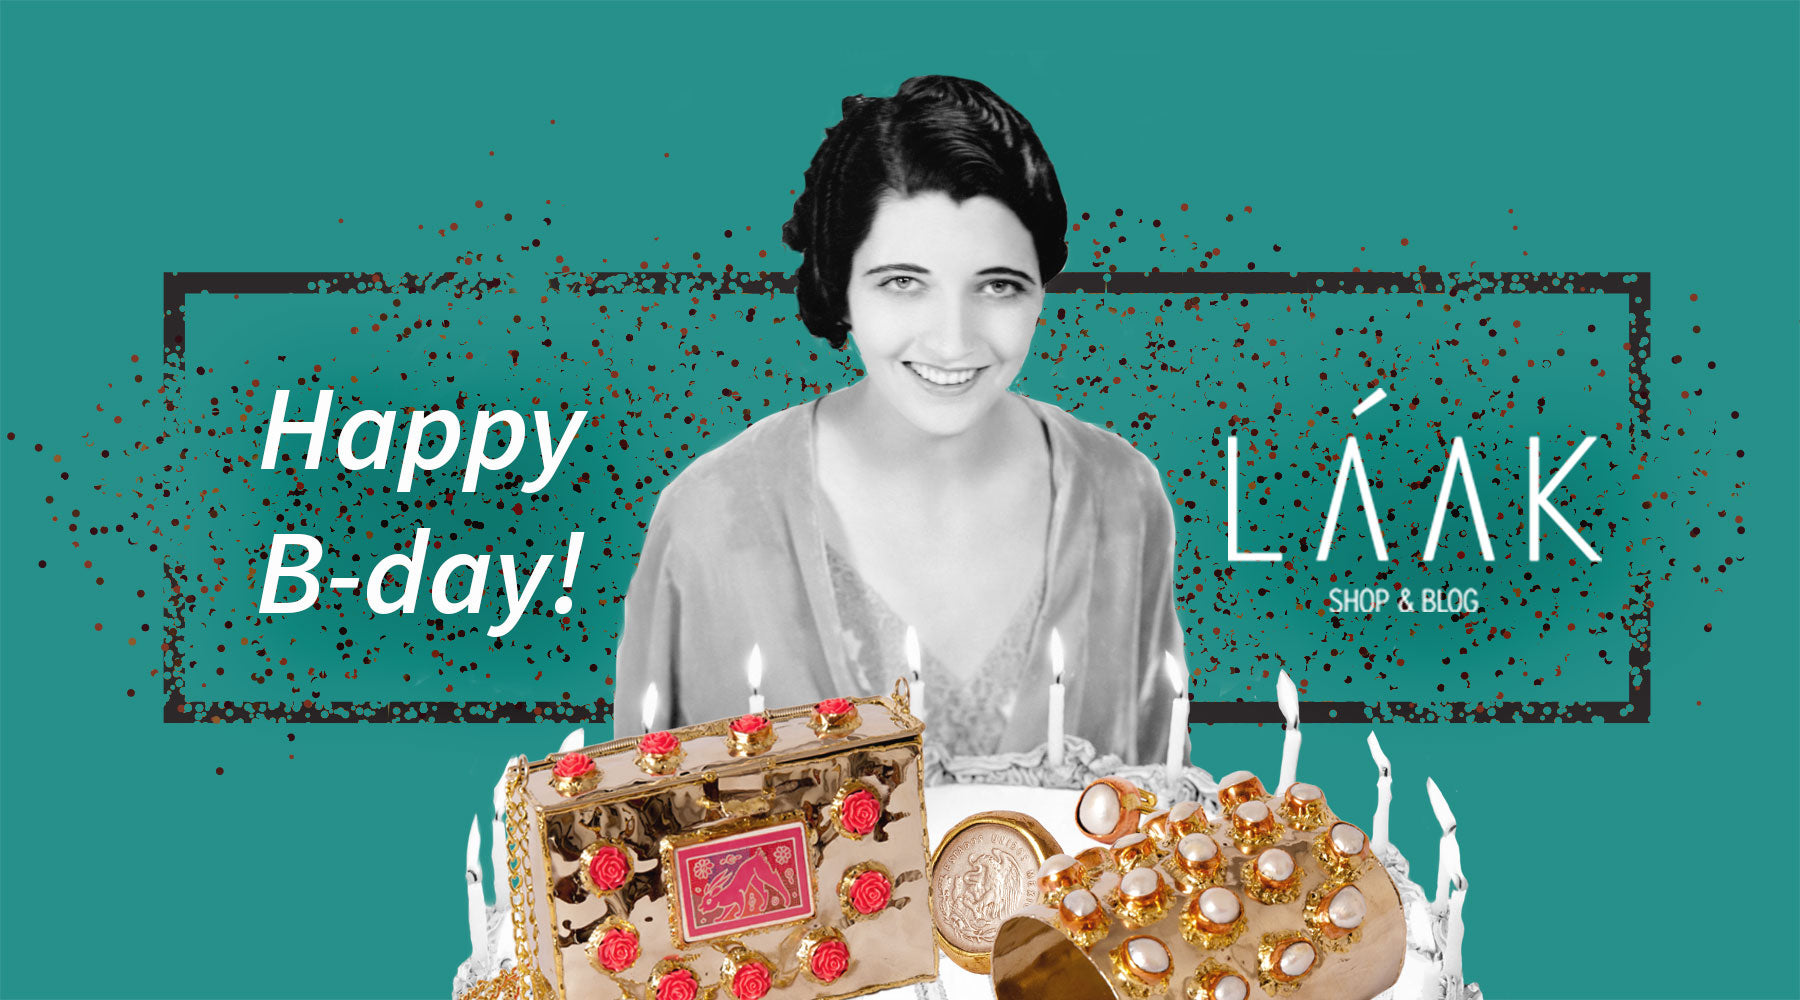 Happy birthday LÁAKshop&blog!!